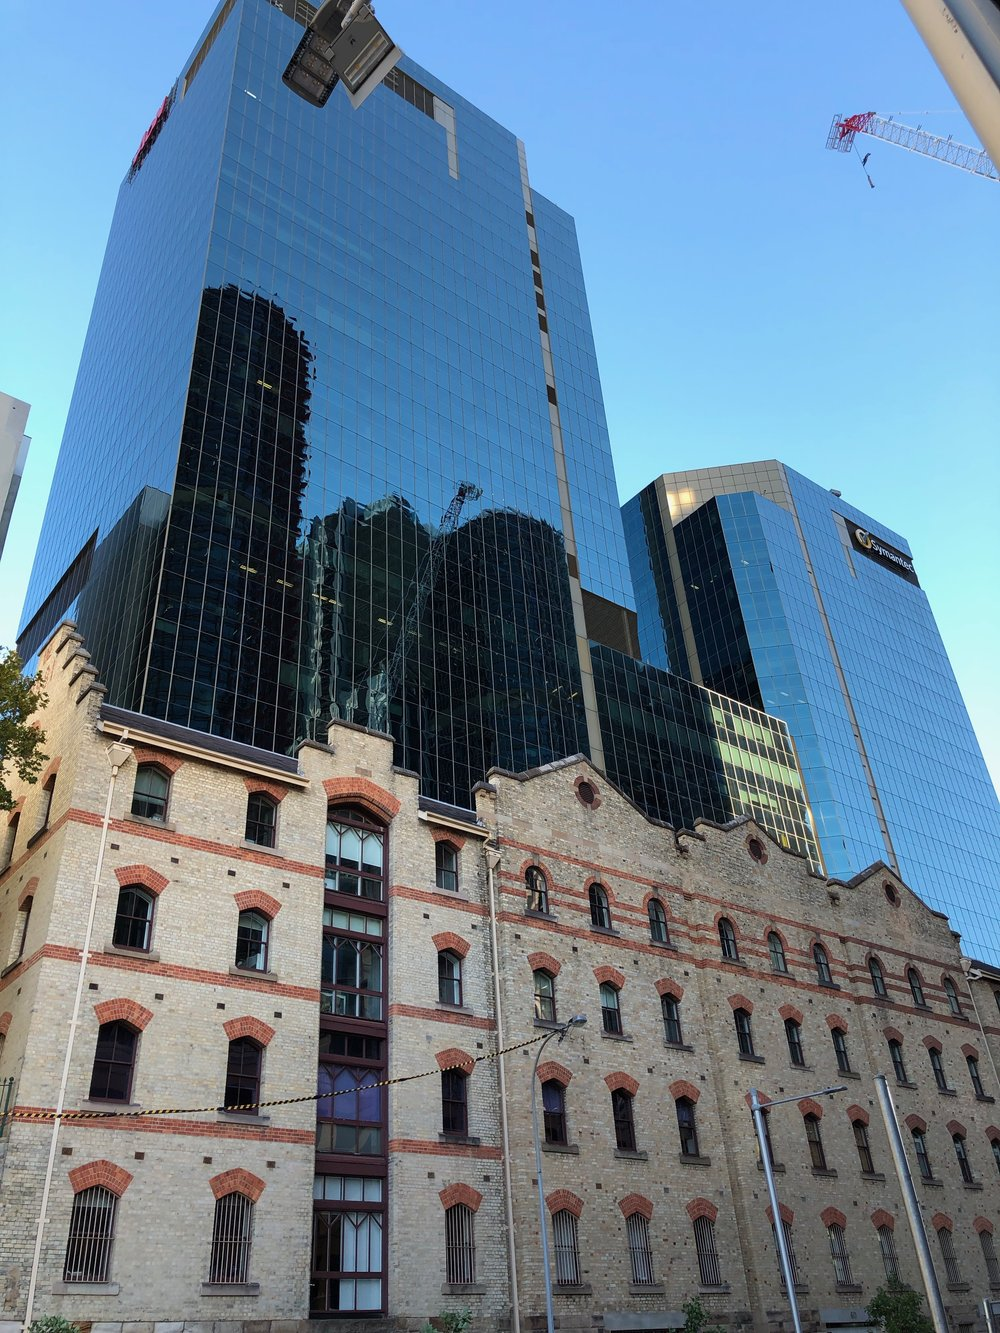 Walk from Darling Harbour to Circular Quay